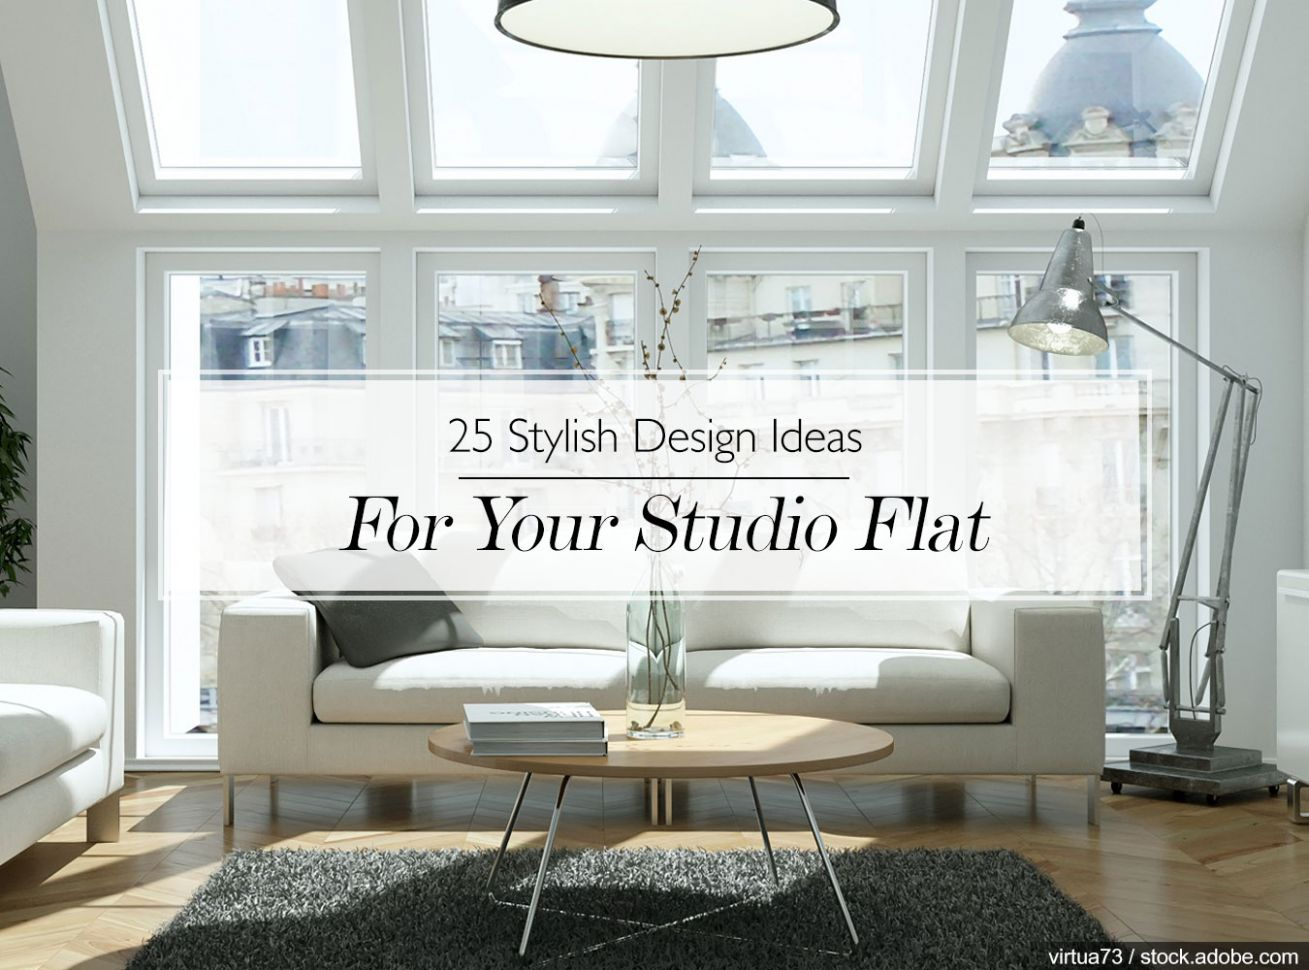 8 Stylish Design Ideas For Your Studio Flat | The LuxPad